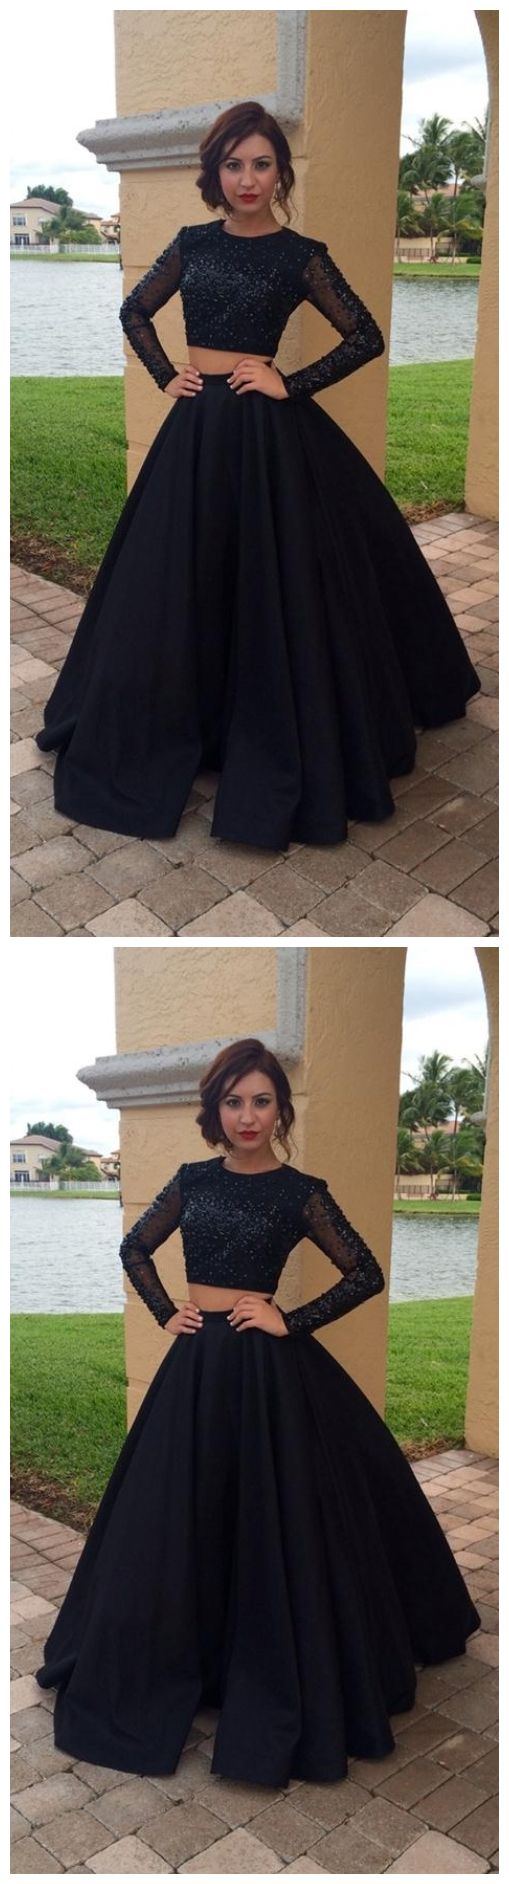 Long Sleeves Black Two Pieces Prom Dresses For Teens,Modest Prom Gowns,Charming Evening Dresses,Women Dresses,Plus Size Prom Dress,Party Dresses